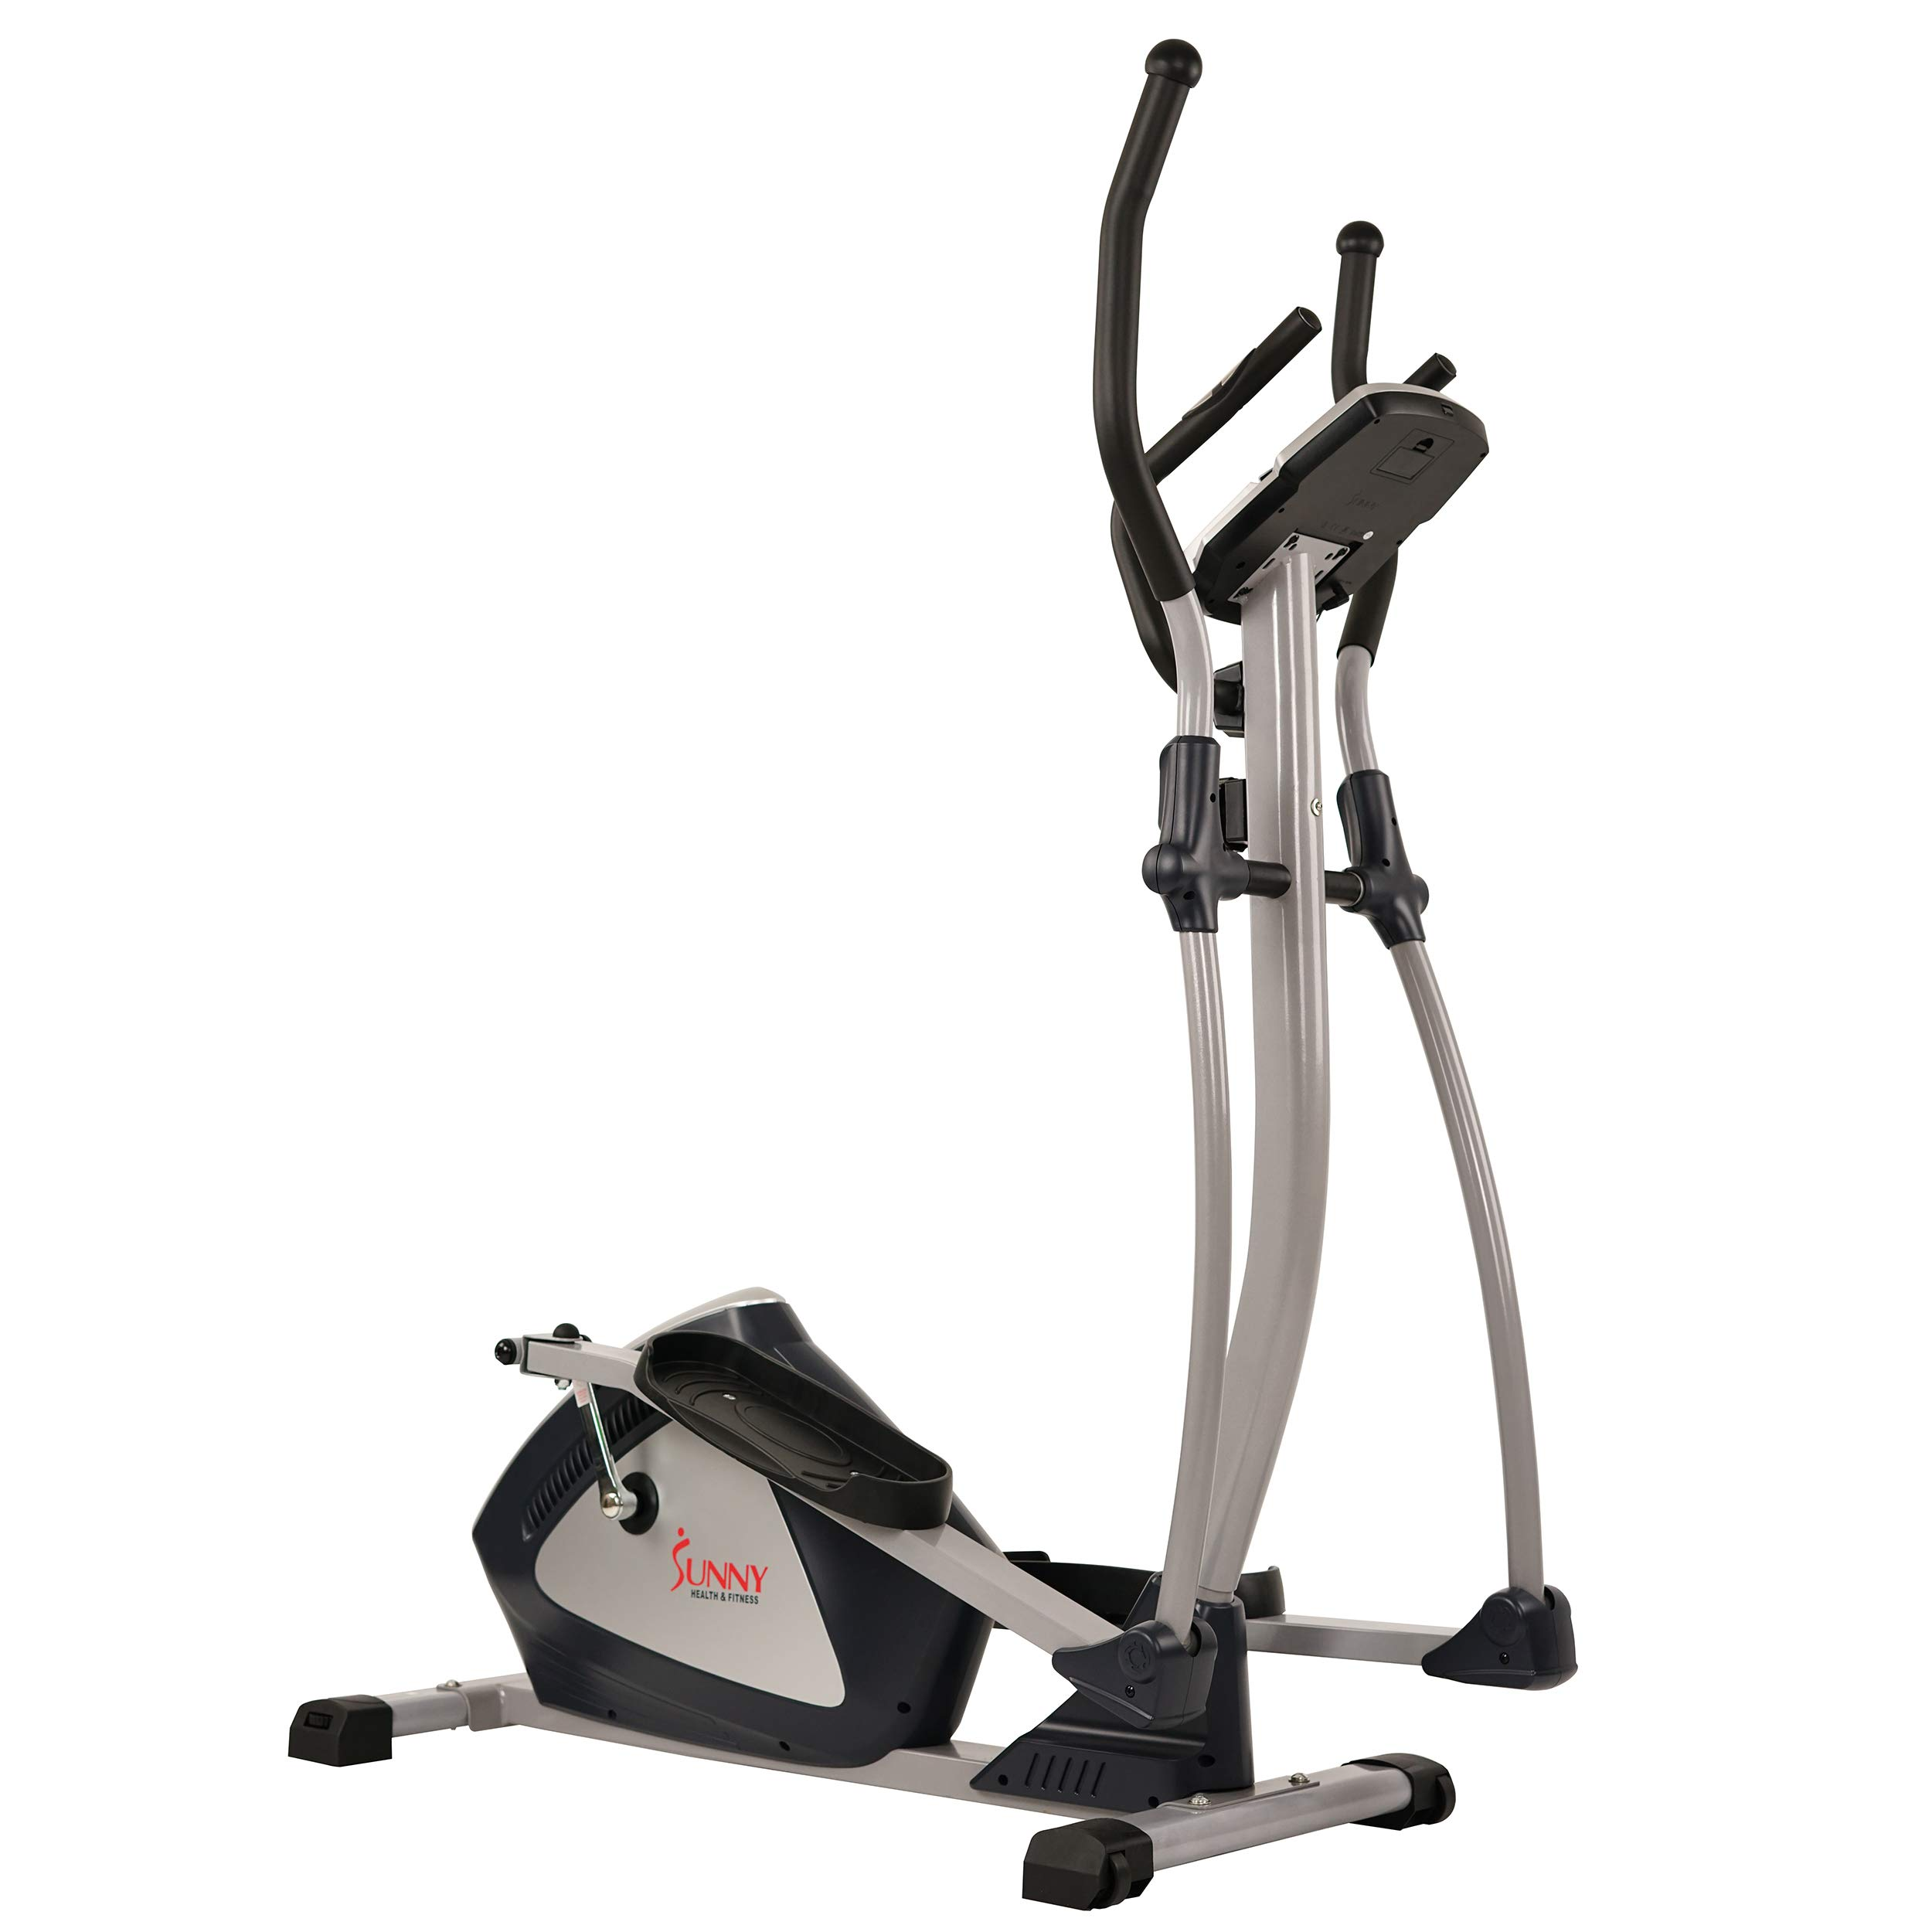 Sunny Health & Fitness Magnetic Elliptical Trainer Elliptical Machine w/  LCD Monitor and Heart Rate Monitoring - Endurance Zone - SF-E3804 by Sunny Health & Fitness (Image #9)